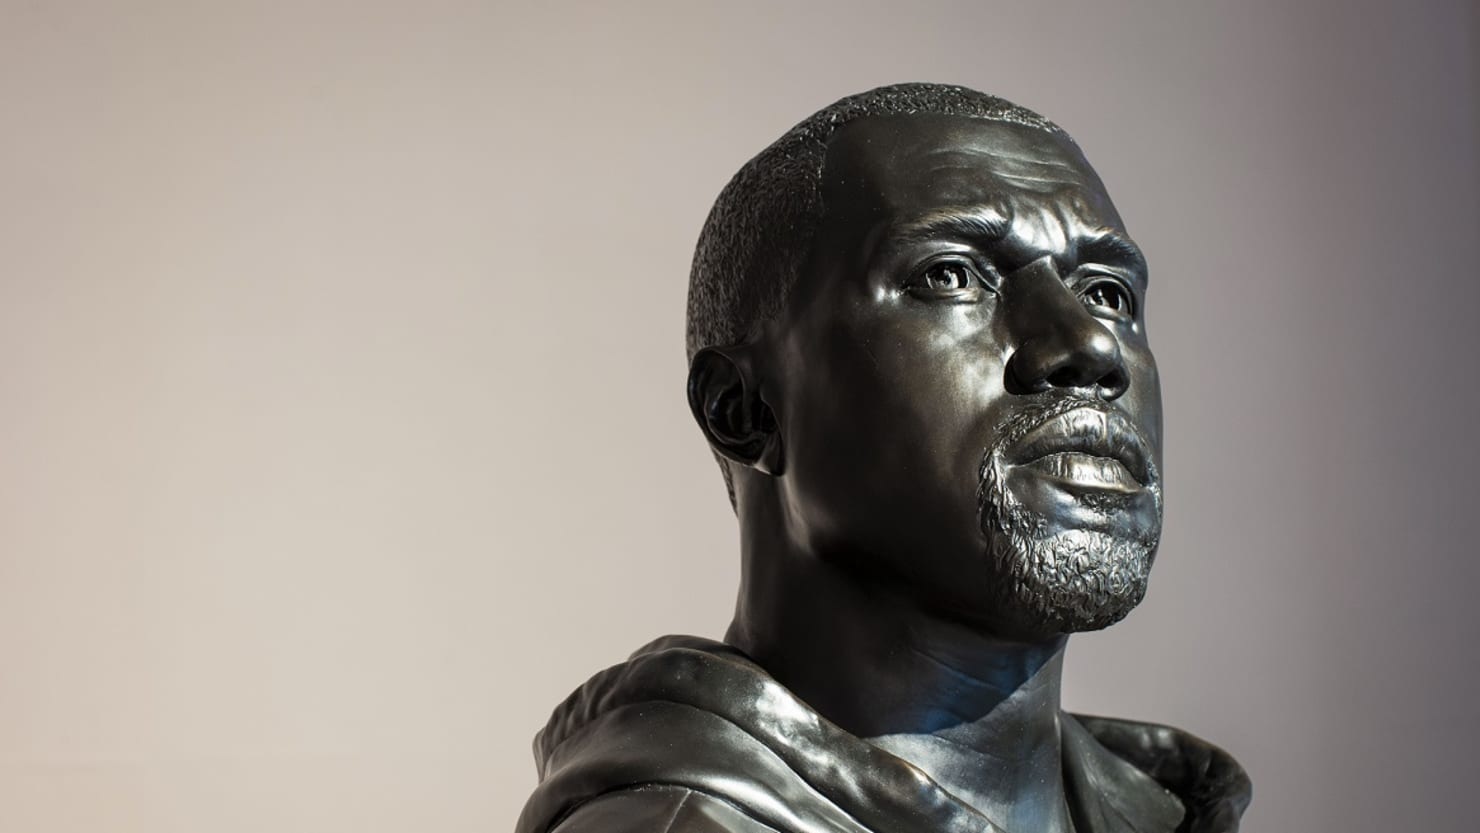 Kanye West sculpture by Kehinde Wiley